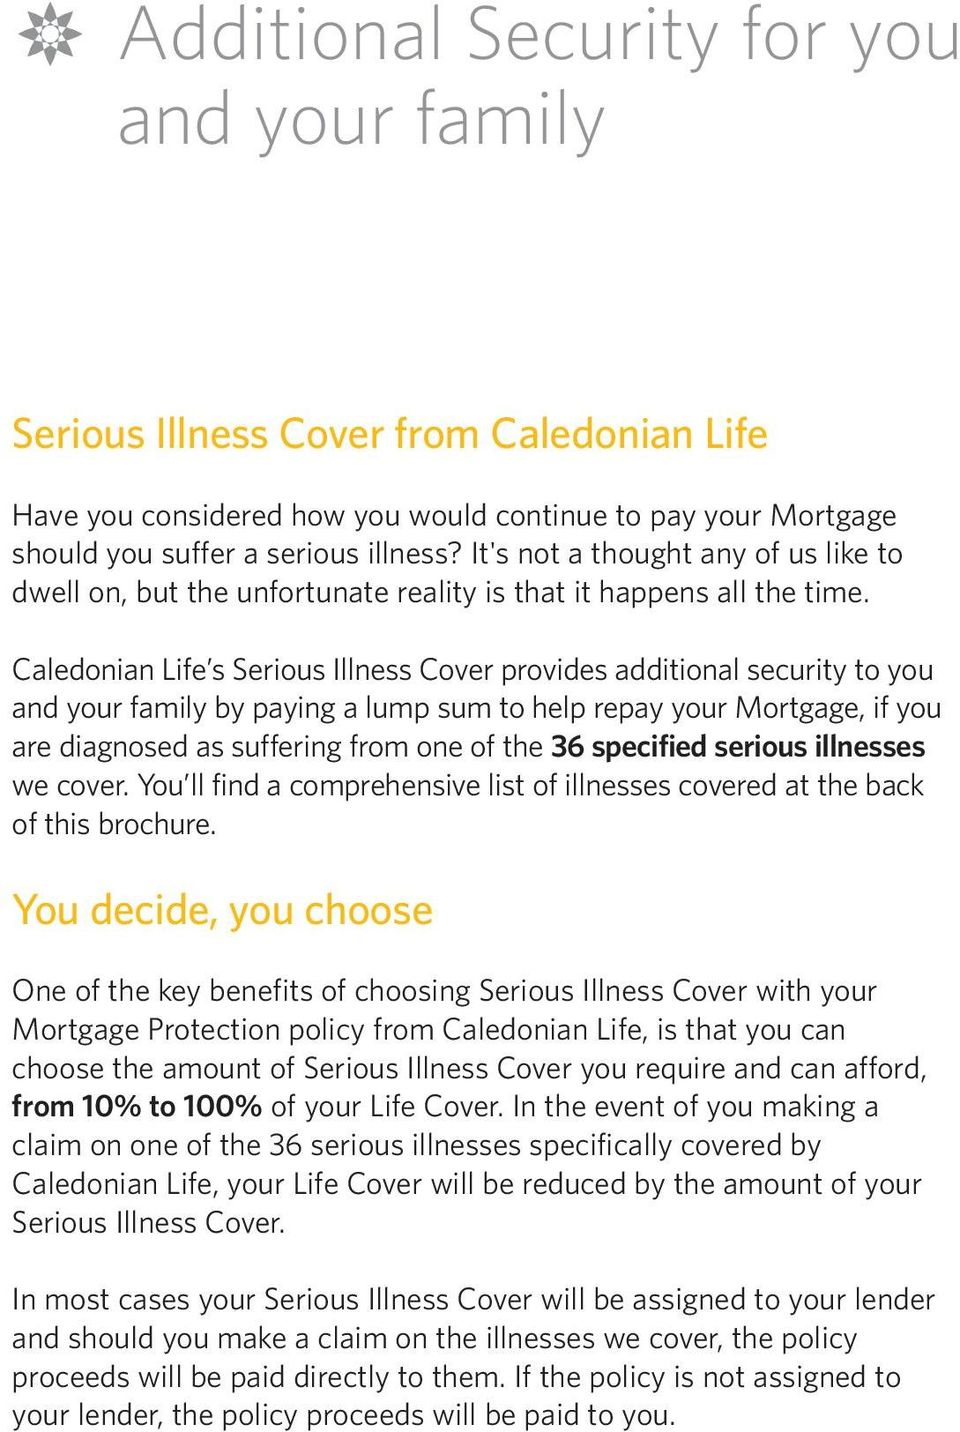 Caledonian Life s Serious Illness Cover provides additional security to you and your family by paying a lump sum to help repay your Mortgage, if you are diagnosed as suffering from one of the 36